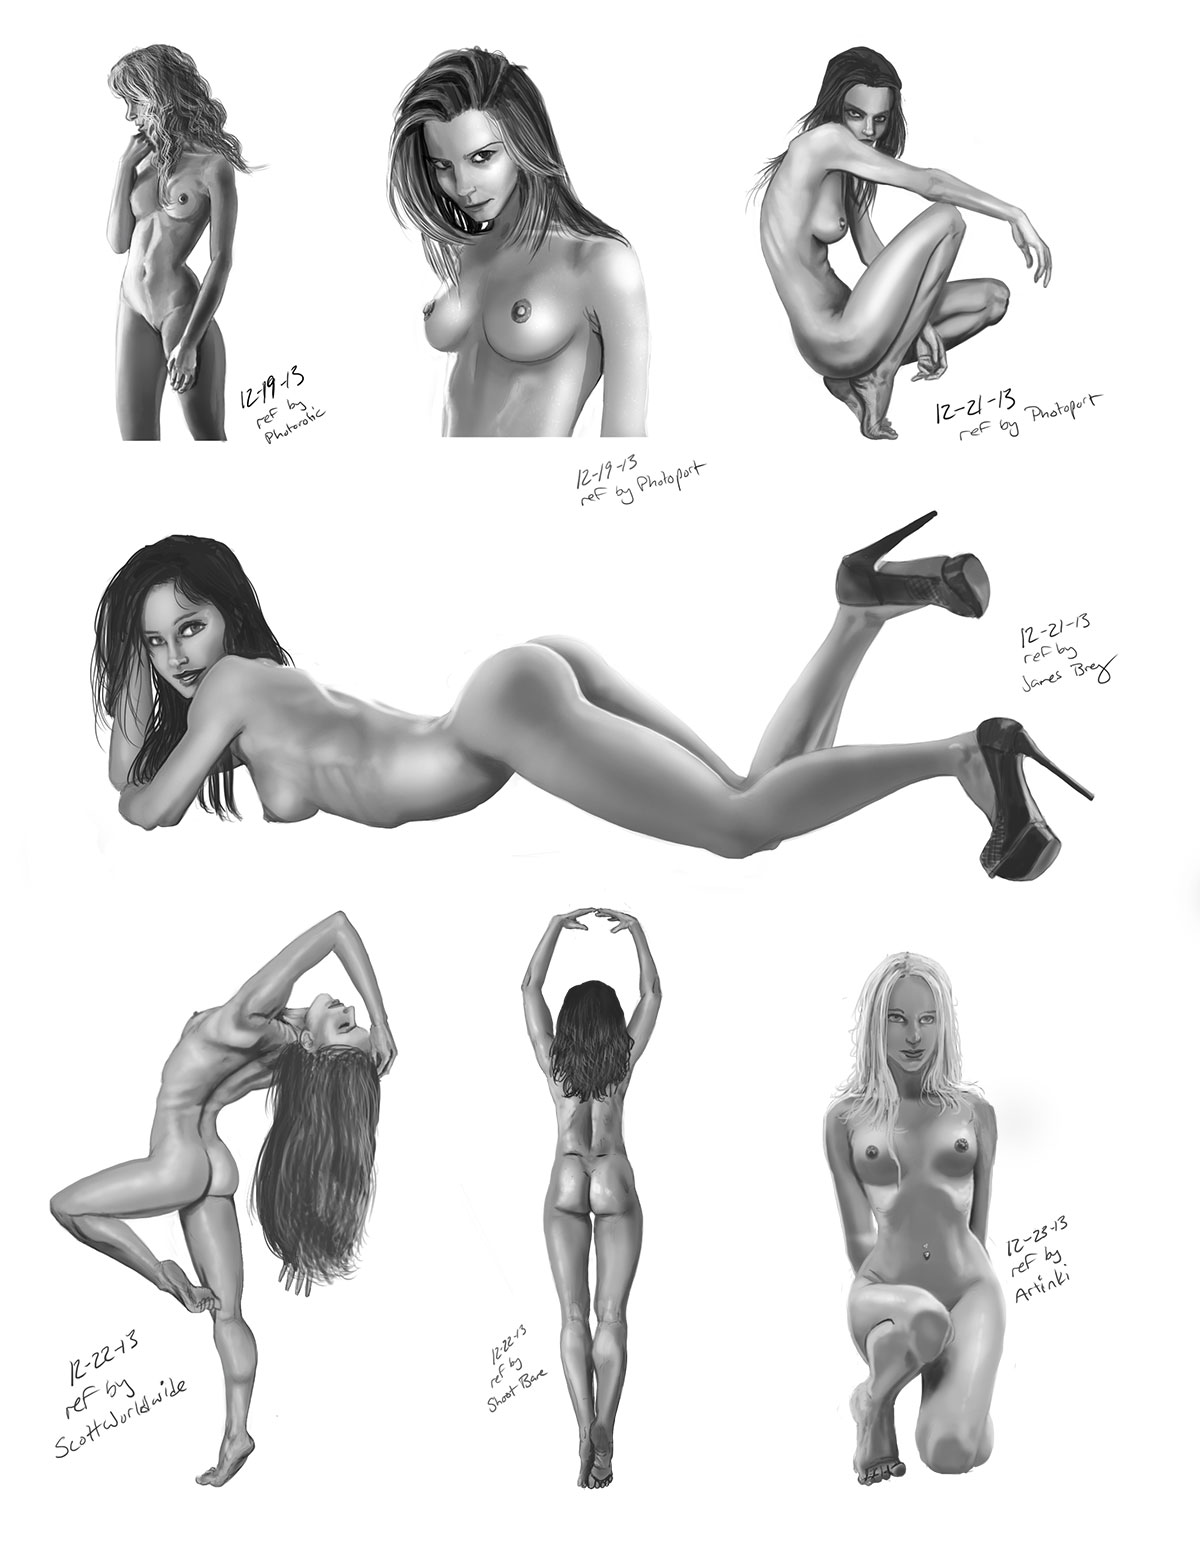 Female Anatomy and value studies | That Summers Guy